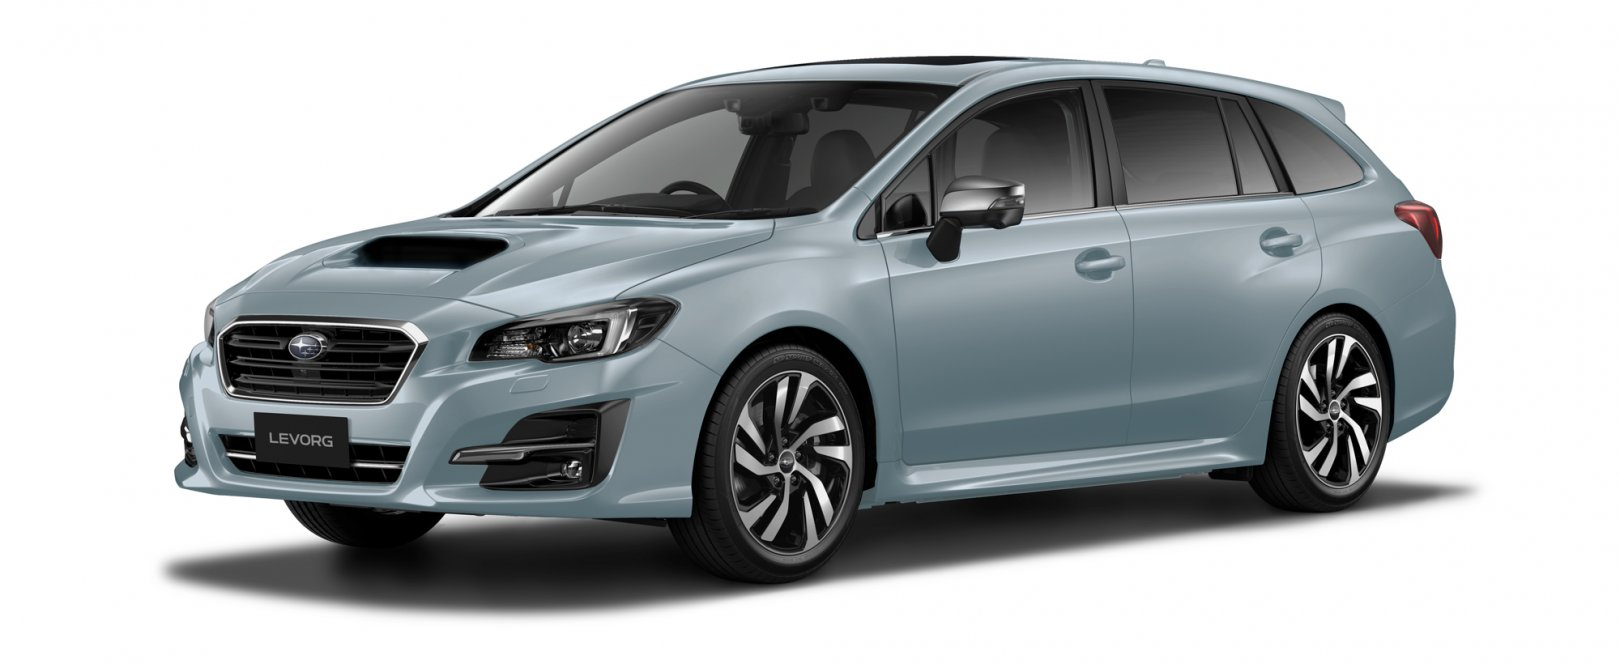 Subaru Levorg cool grey